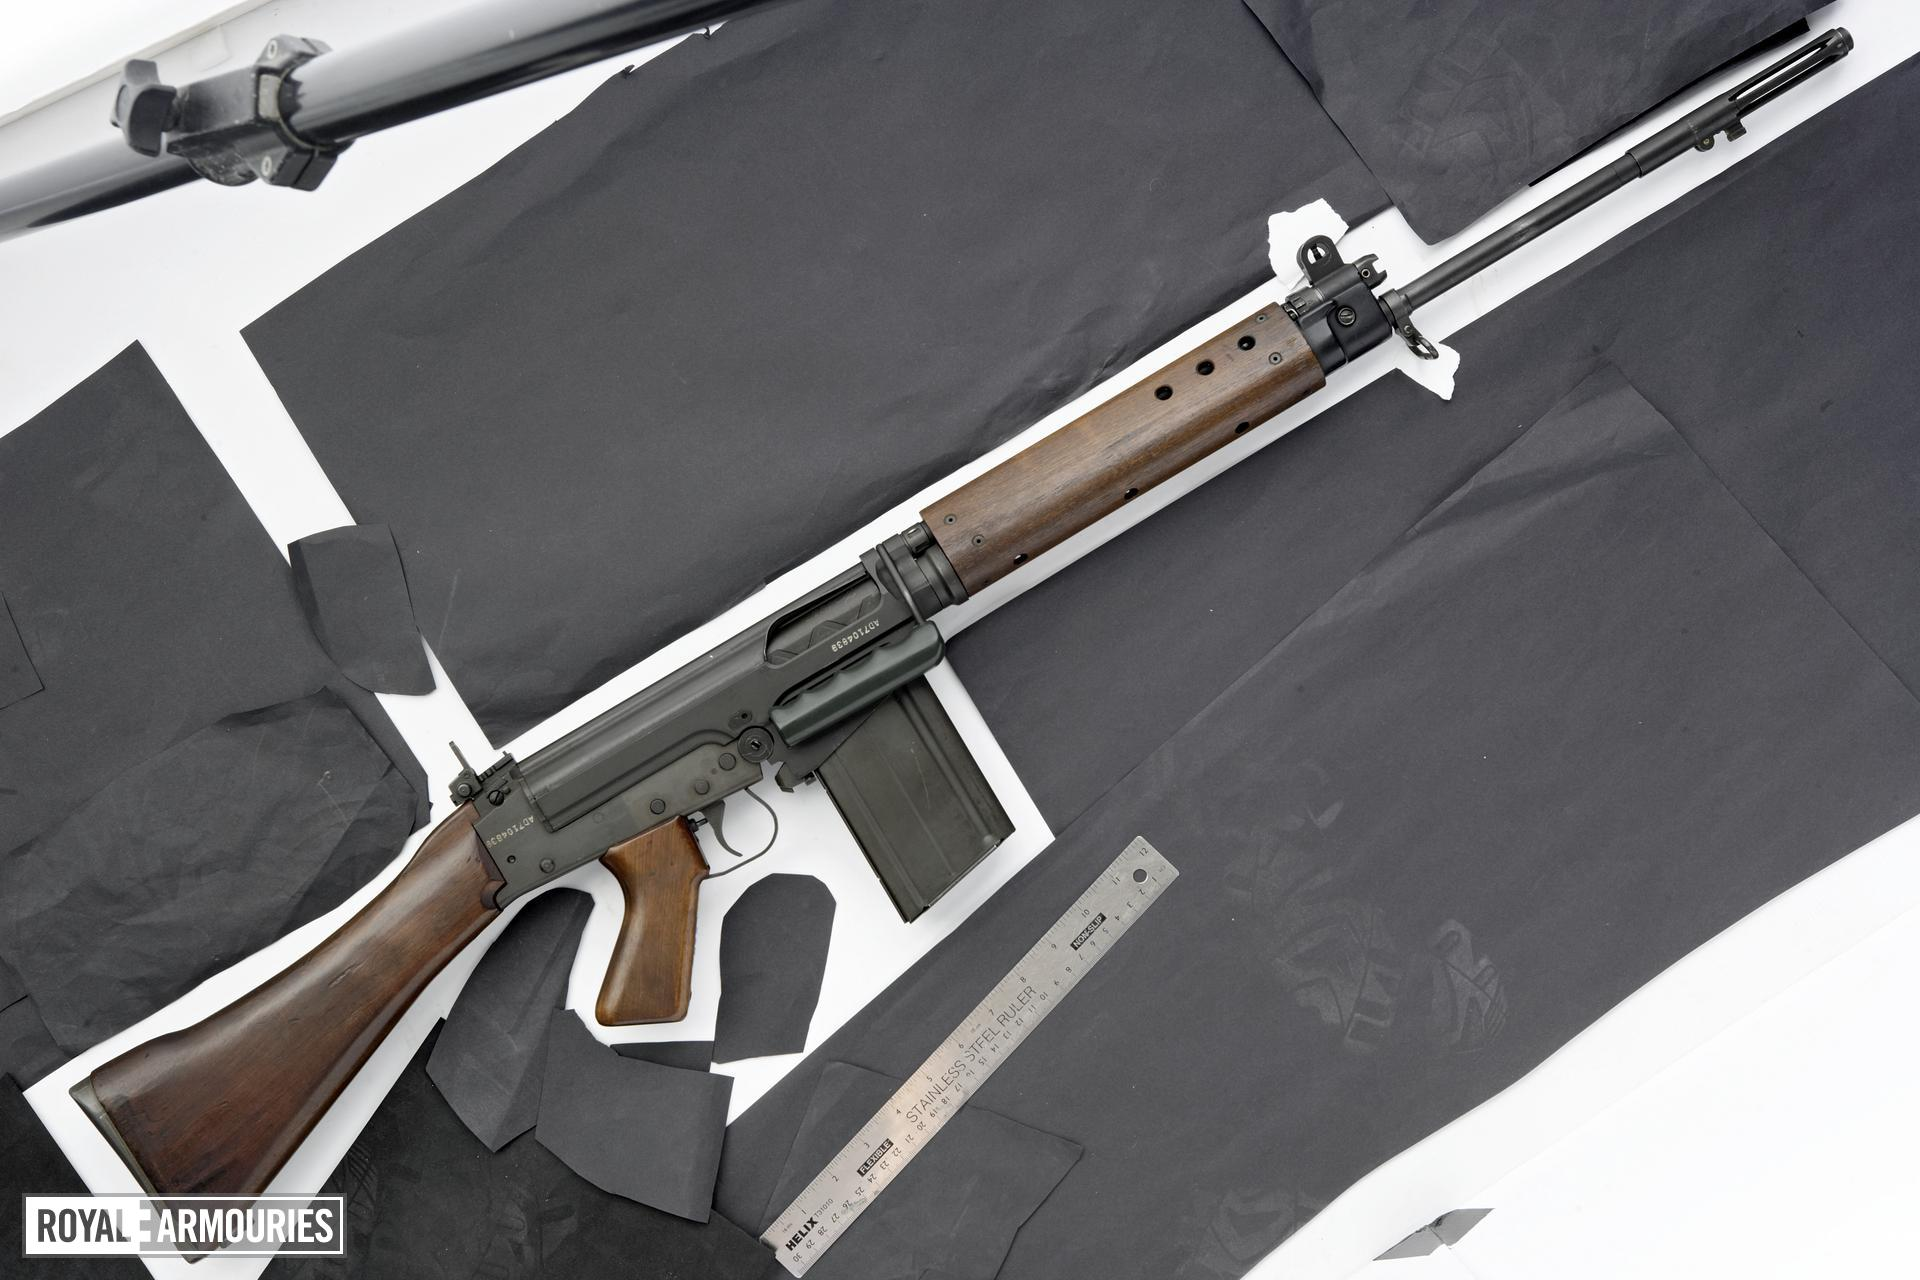 Centrefire self-loading rifle - FN L1A1